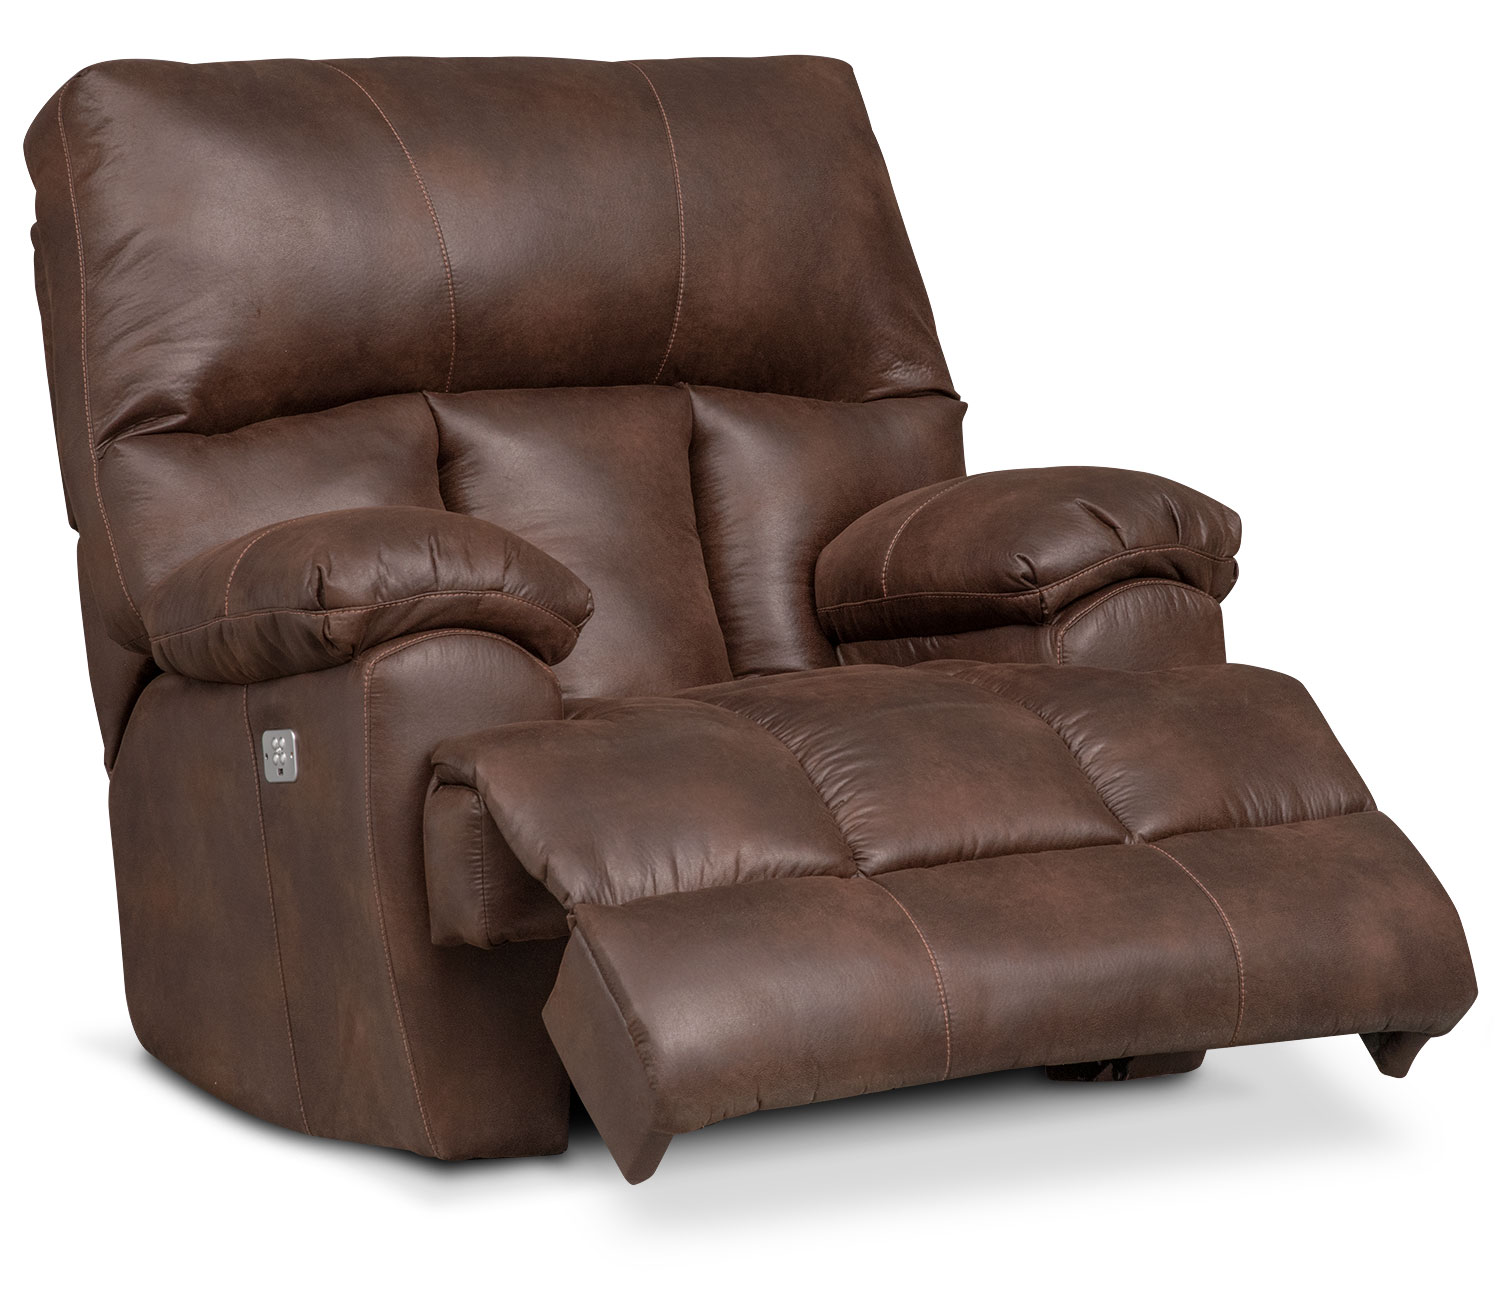 bronco dual power recliner espresso by one80